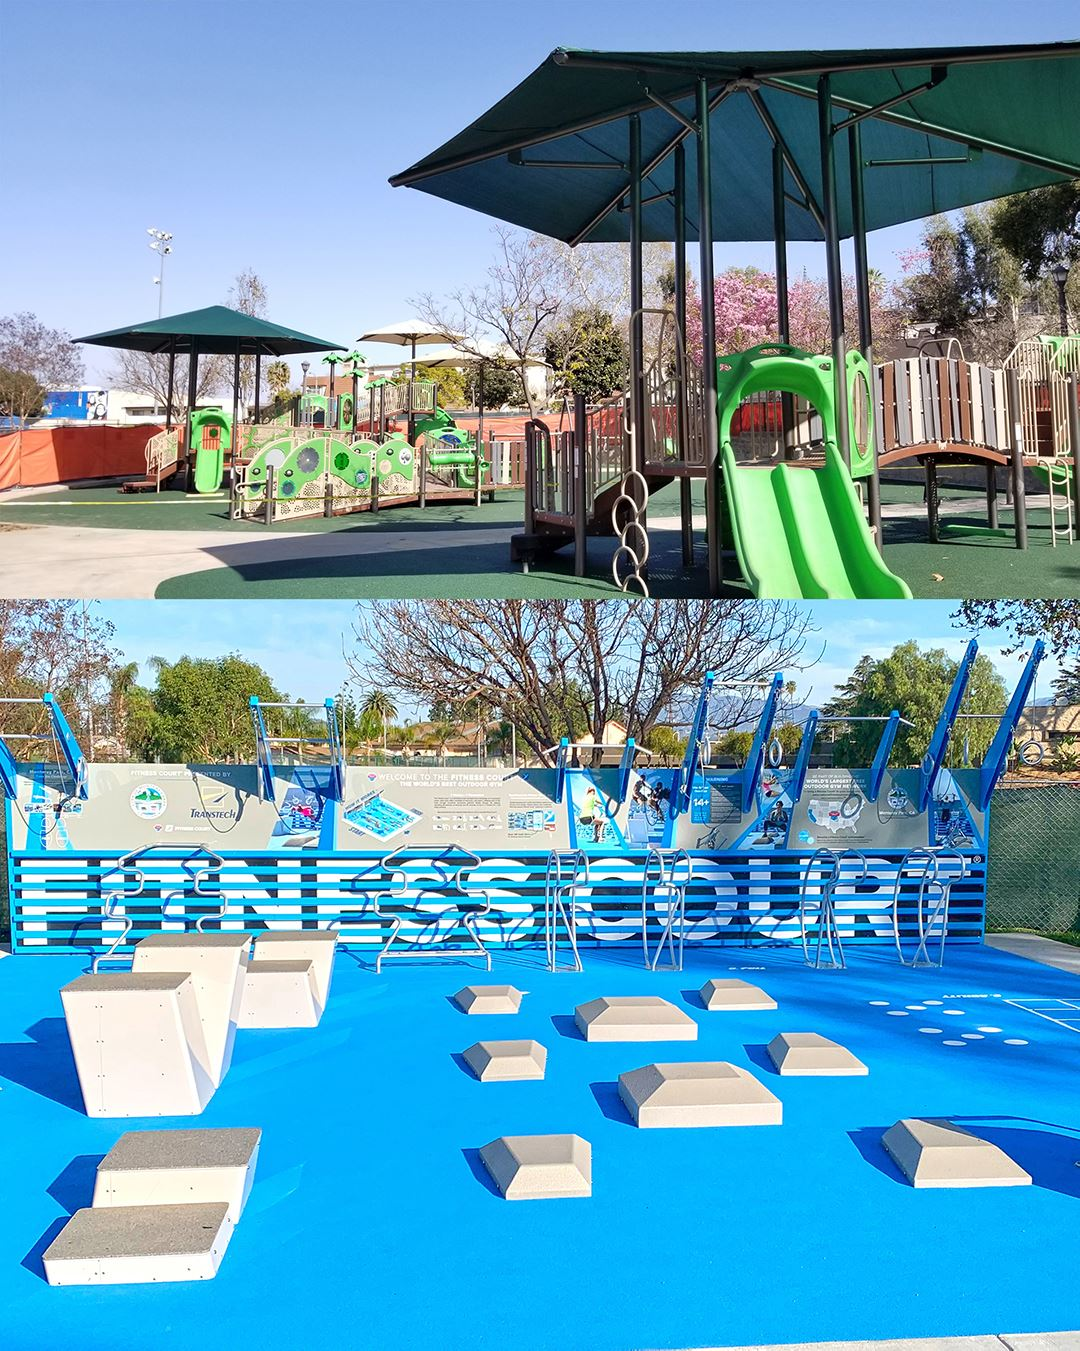 Barnes Park playground and fitness court collage